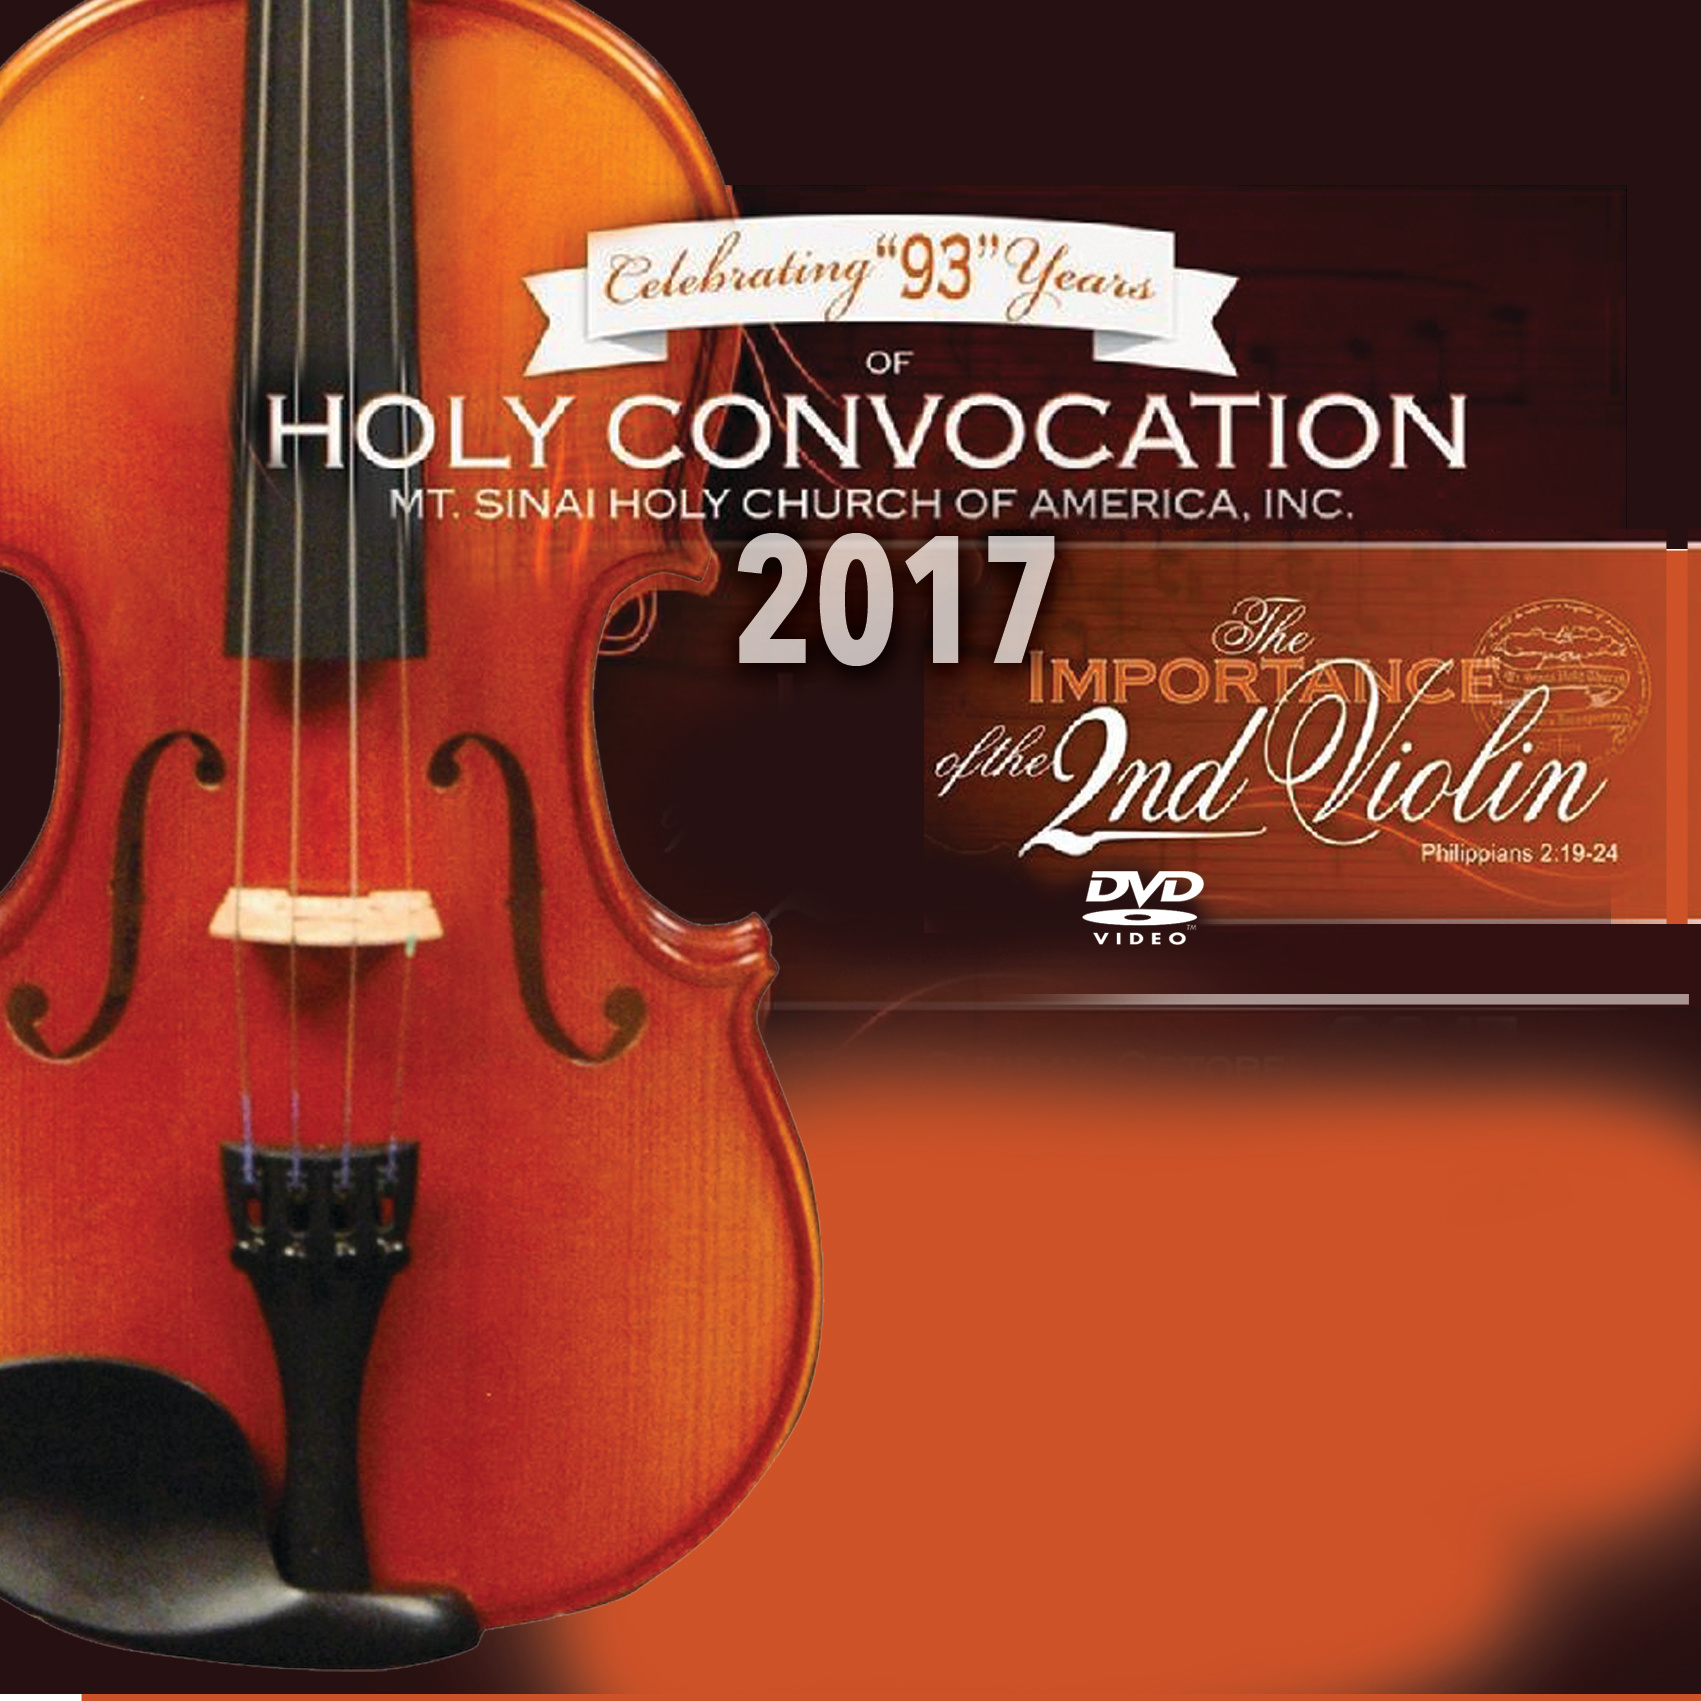 CONVOCATION_DVD_Artwork_PRINT